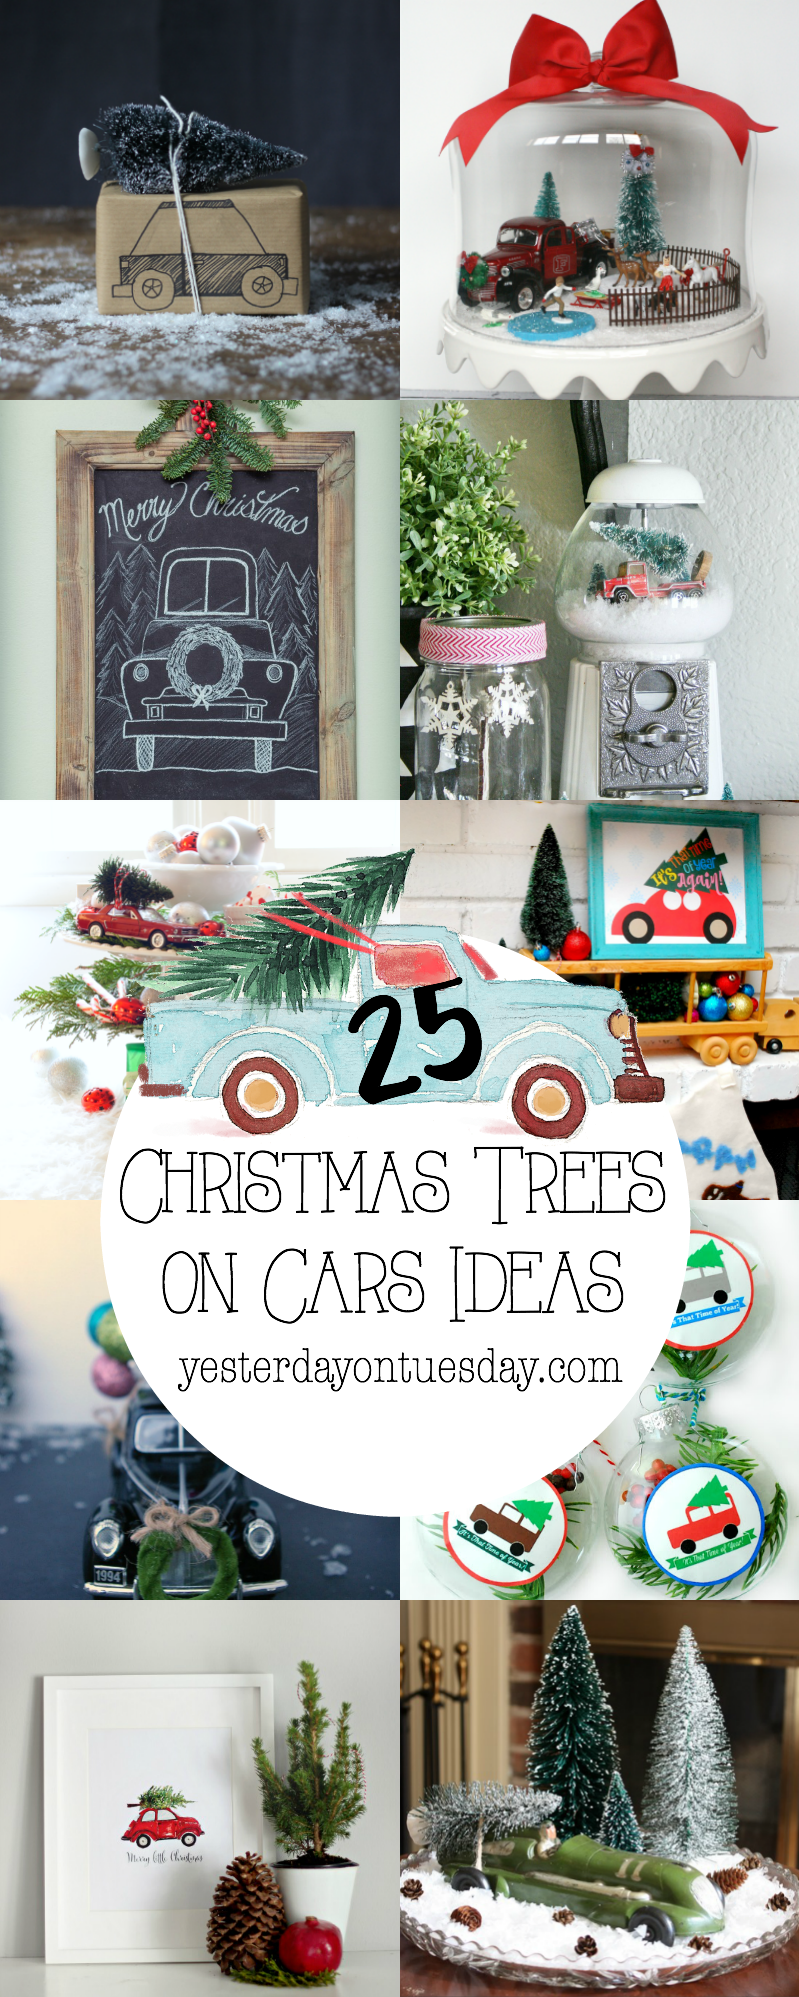 25 Christmas Trees On Cars Ideas Png